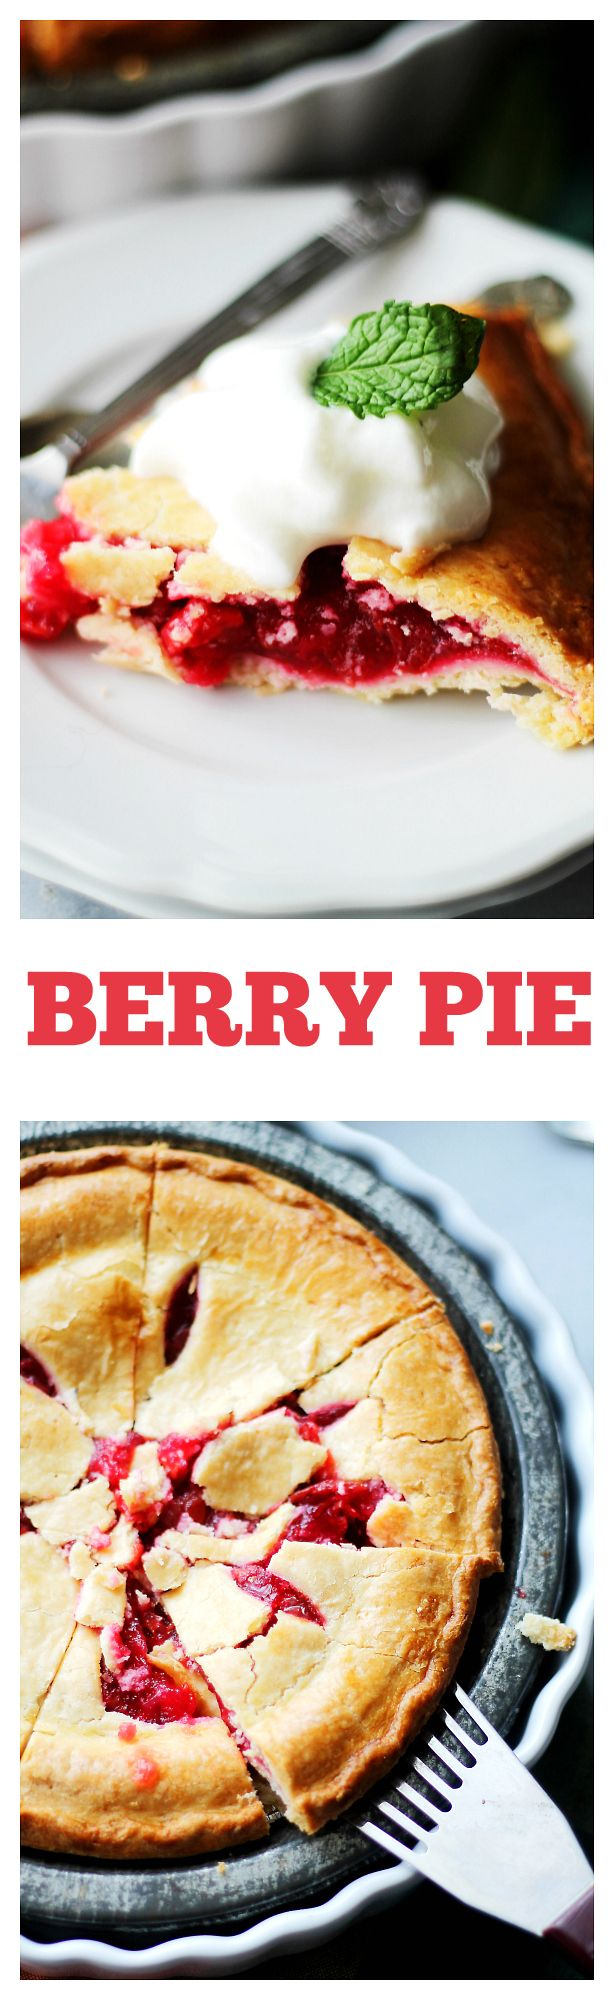 Berry Pie | www.diethood.com | Lightened-up flaky pie crust filled with a tangy and delicious mixture of berries.